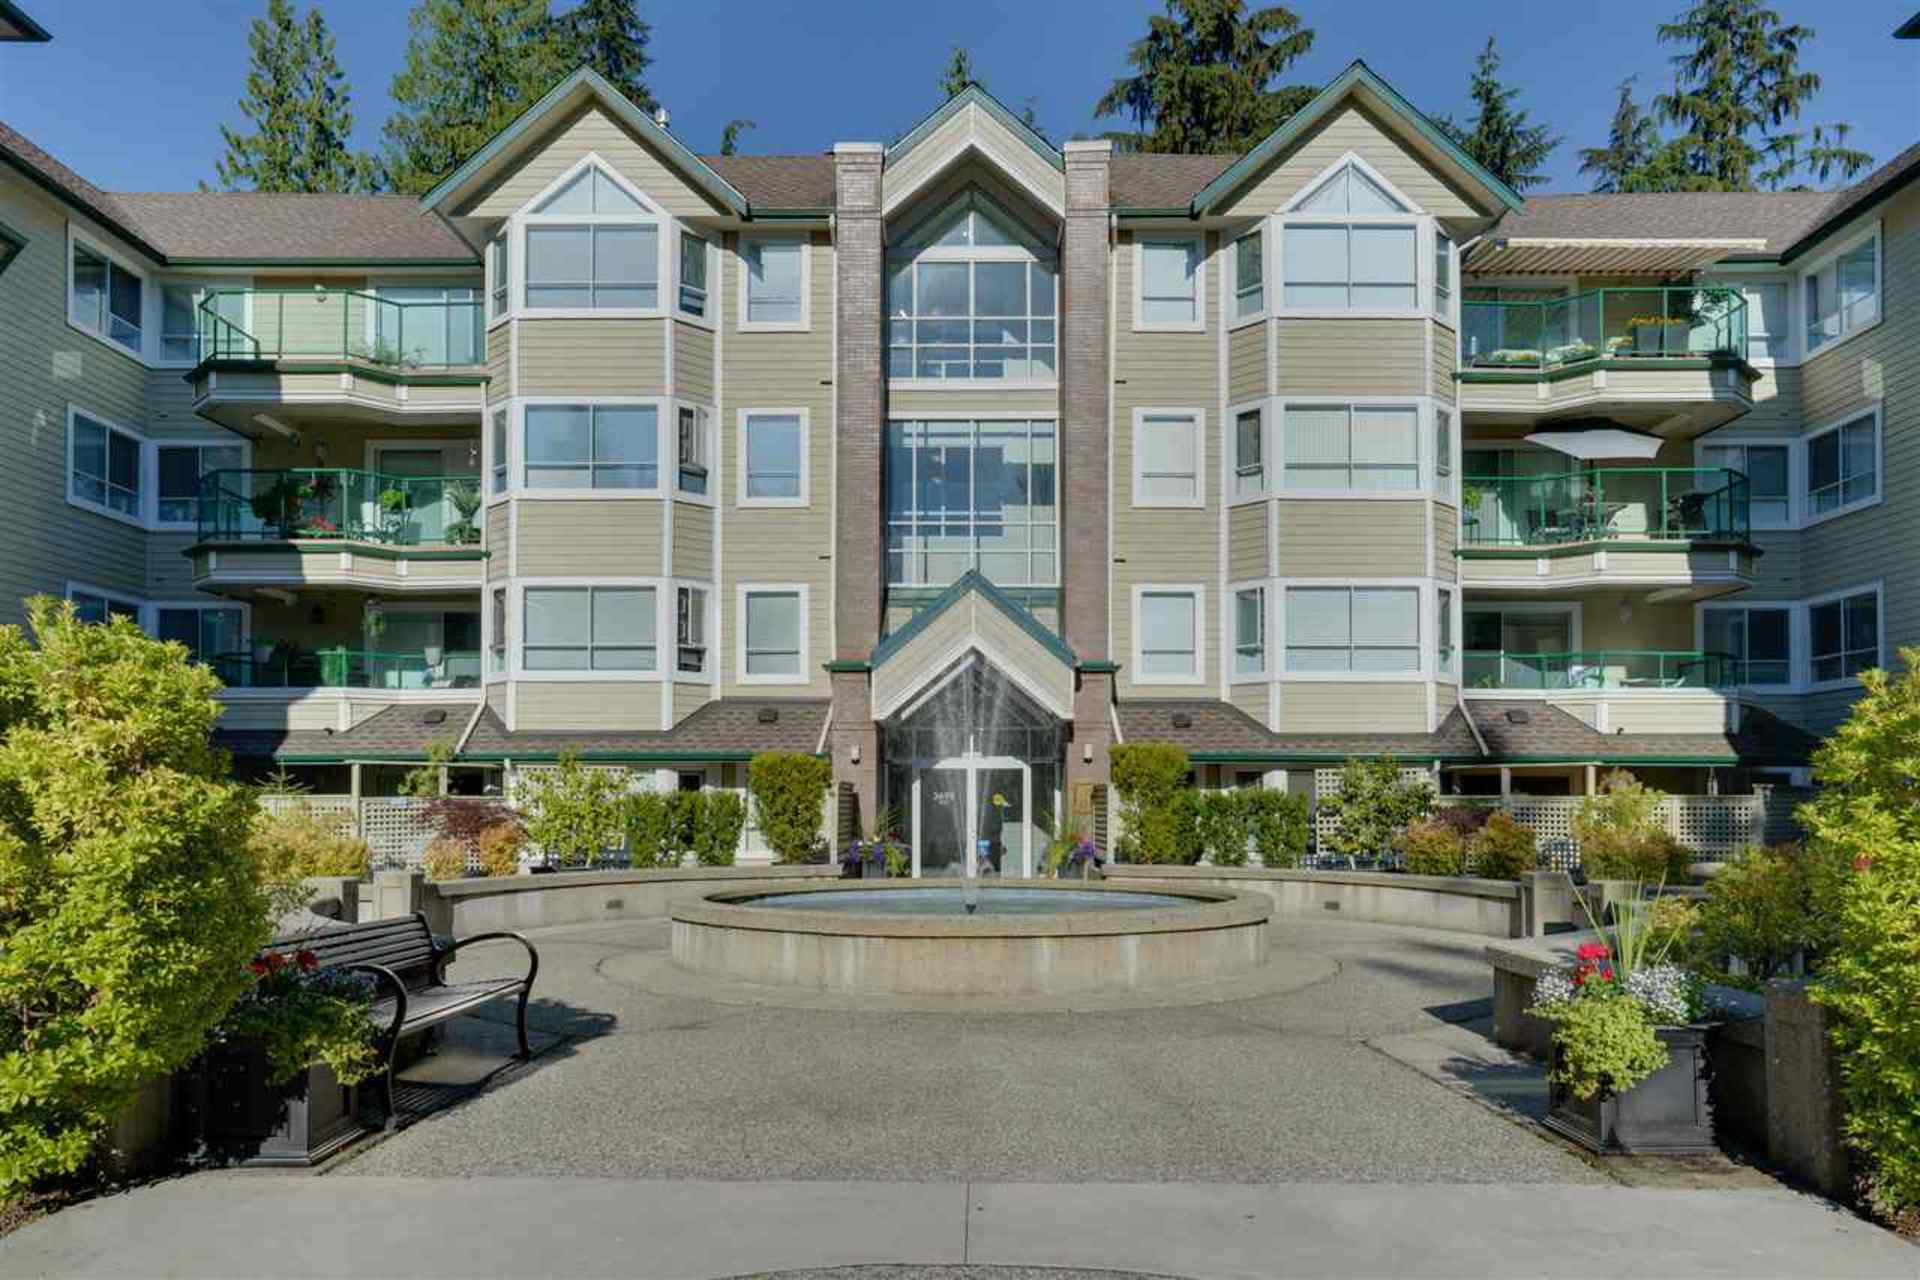 408 - 3690 Banff Court, Northlands, North Vancouver 2